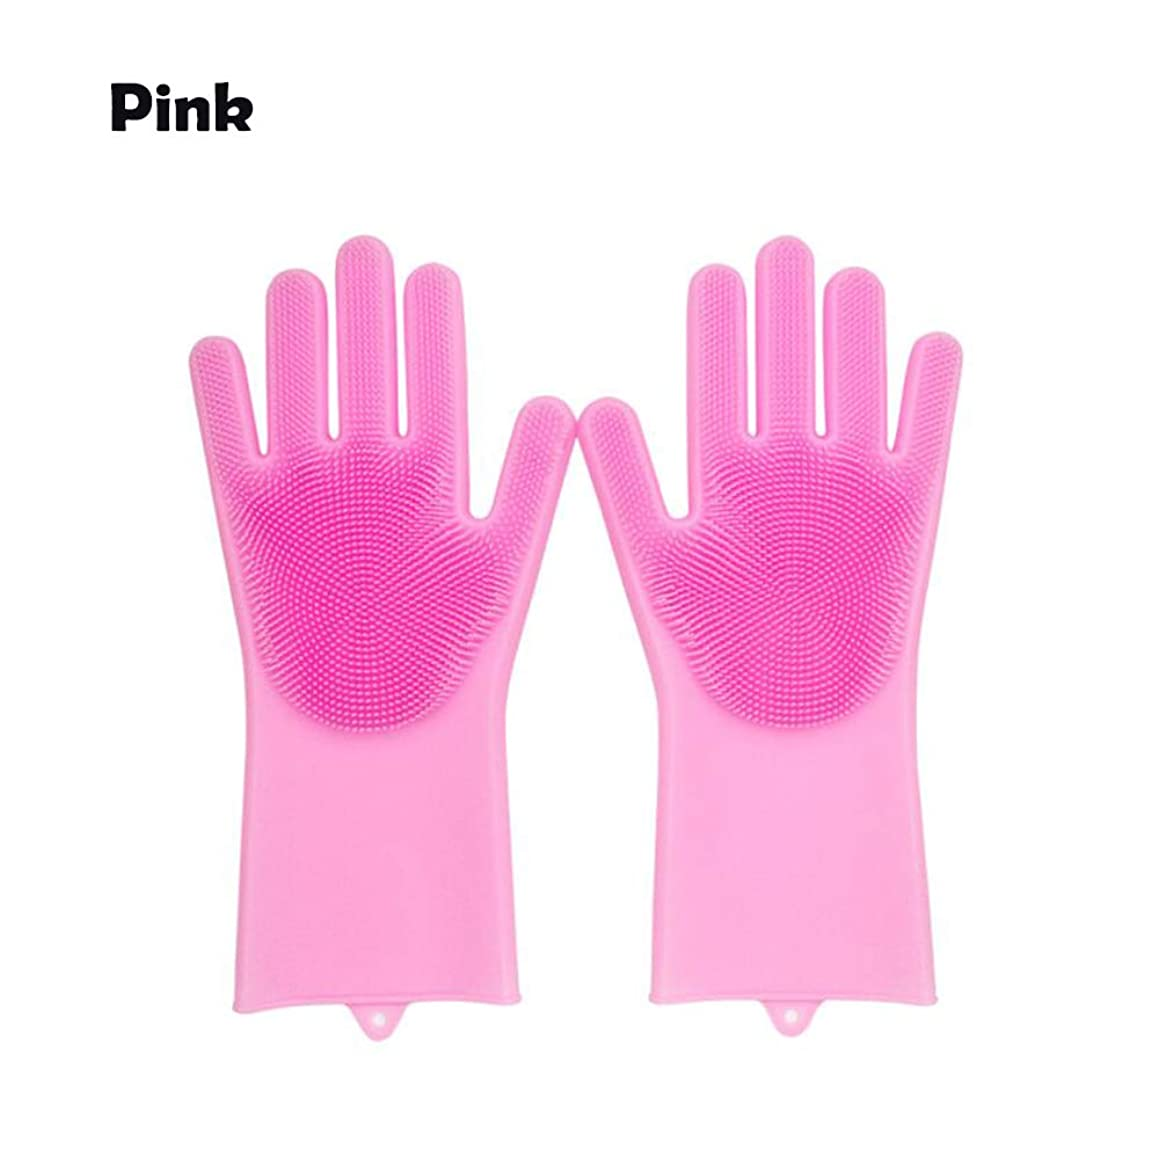 A Pair Magic Silicone Scrubber Rubber Cleaning Gloves Dusting Dish Washing Pet Care Grooming Hair Car Insulated Kitchen Helper 2 A Pair